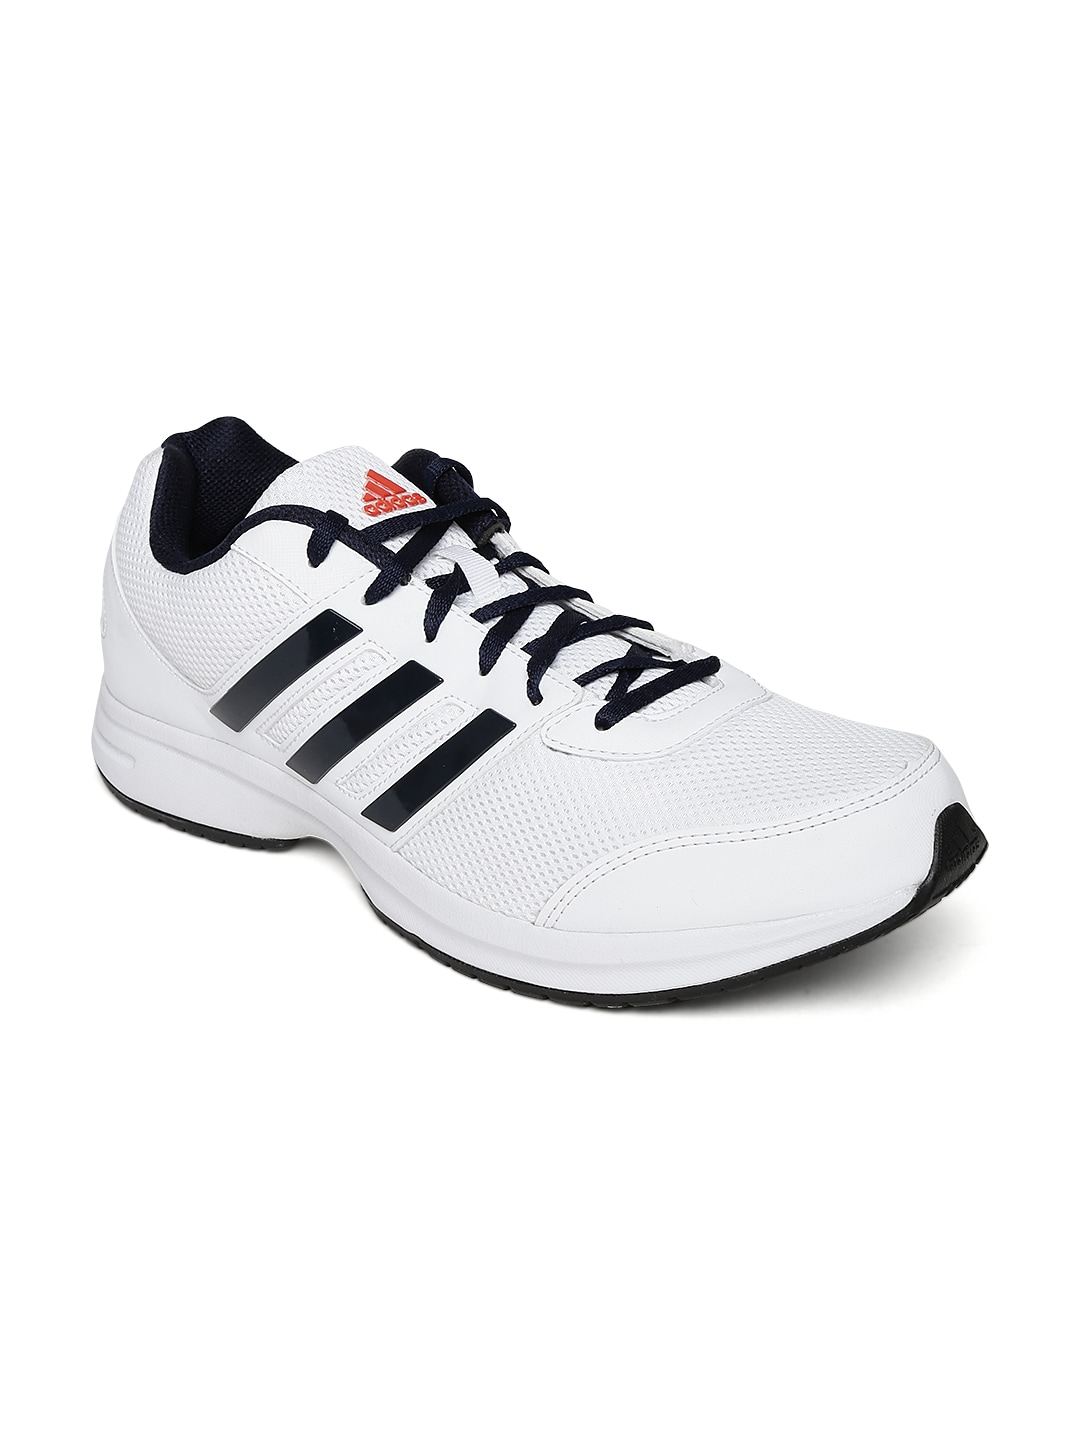 adidas men sports shoes